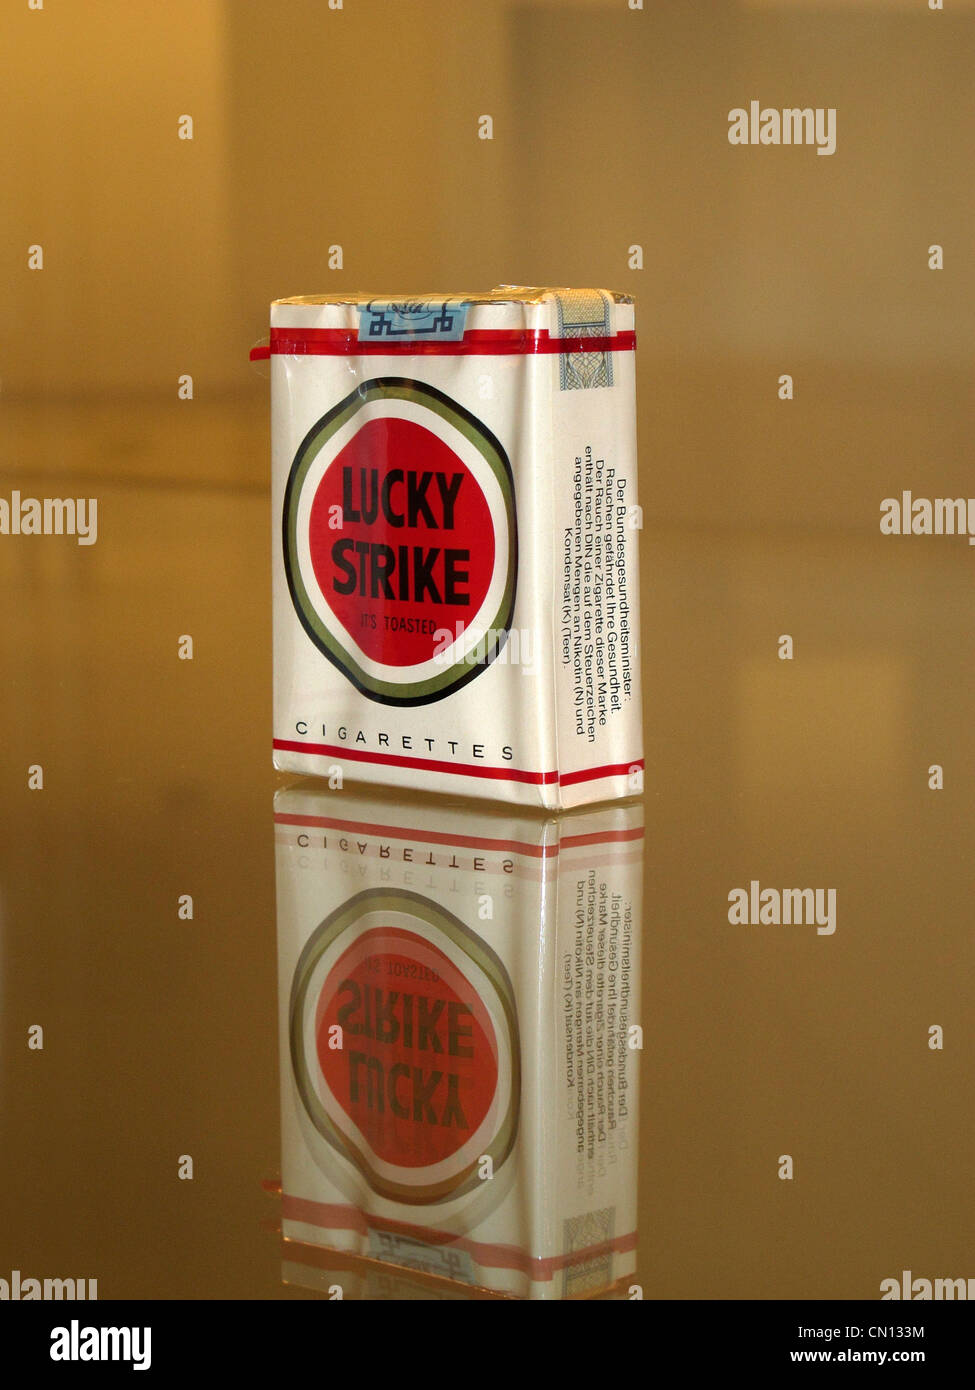 Lucky Strike cigarette package - Stock Image